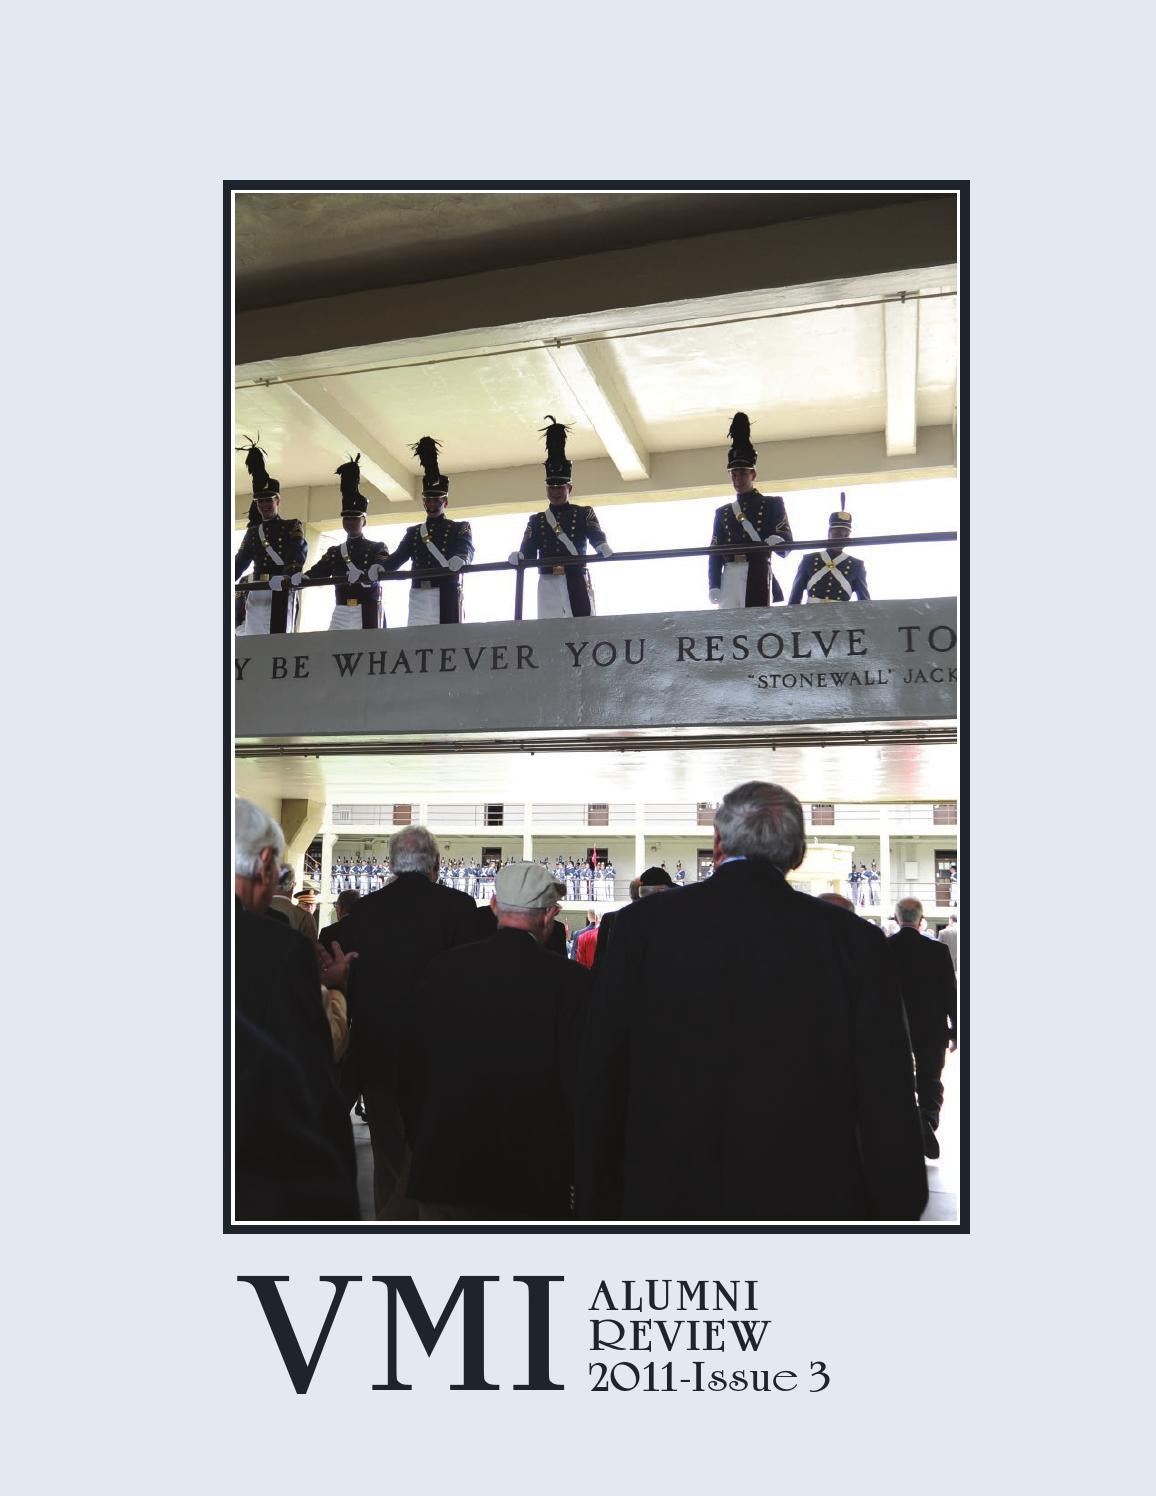 2d2076b2d Alumni Review 2011 Issue 3 by VMI Alumni Agencies - issuu